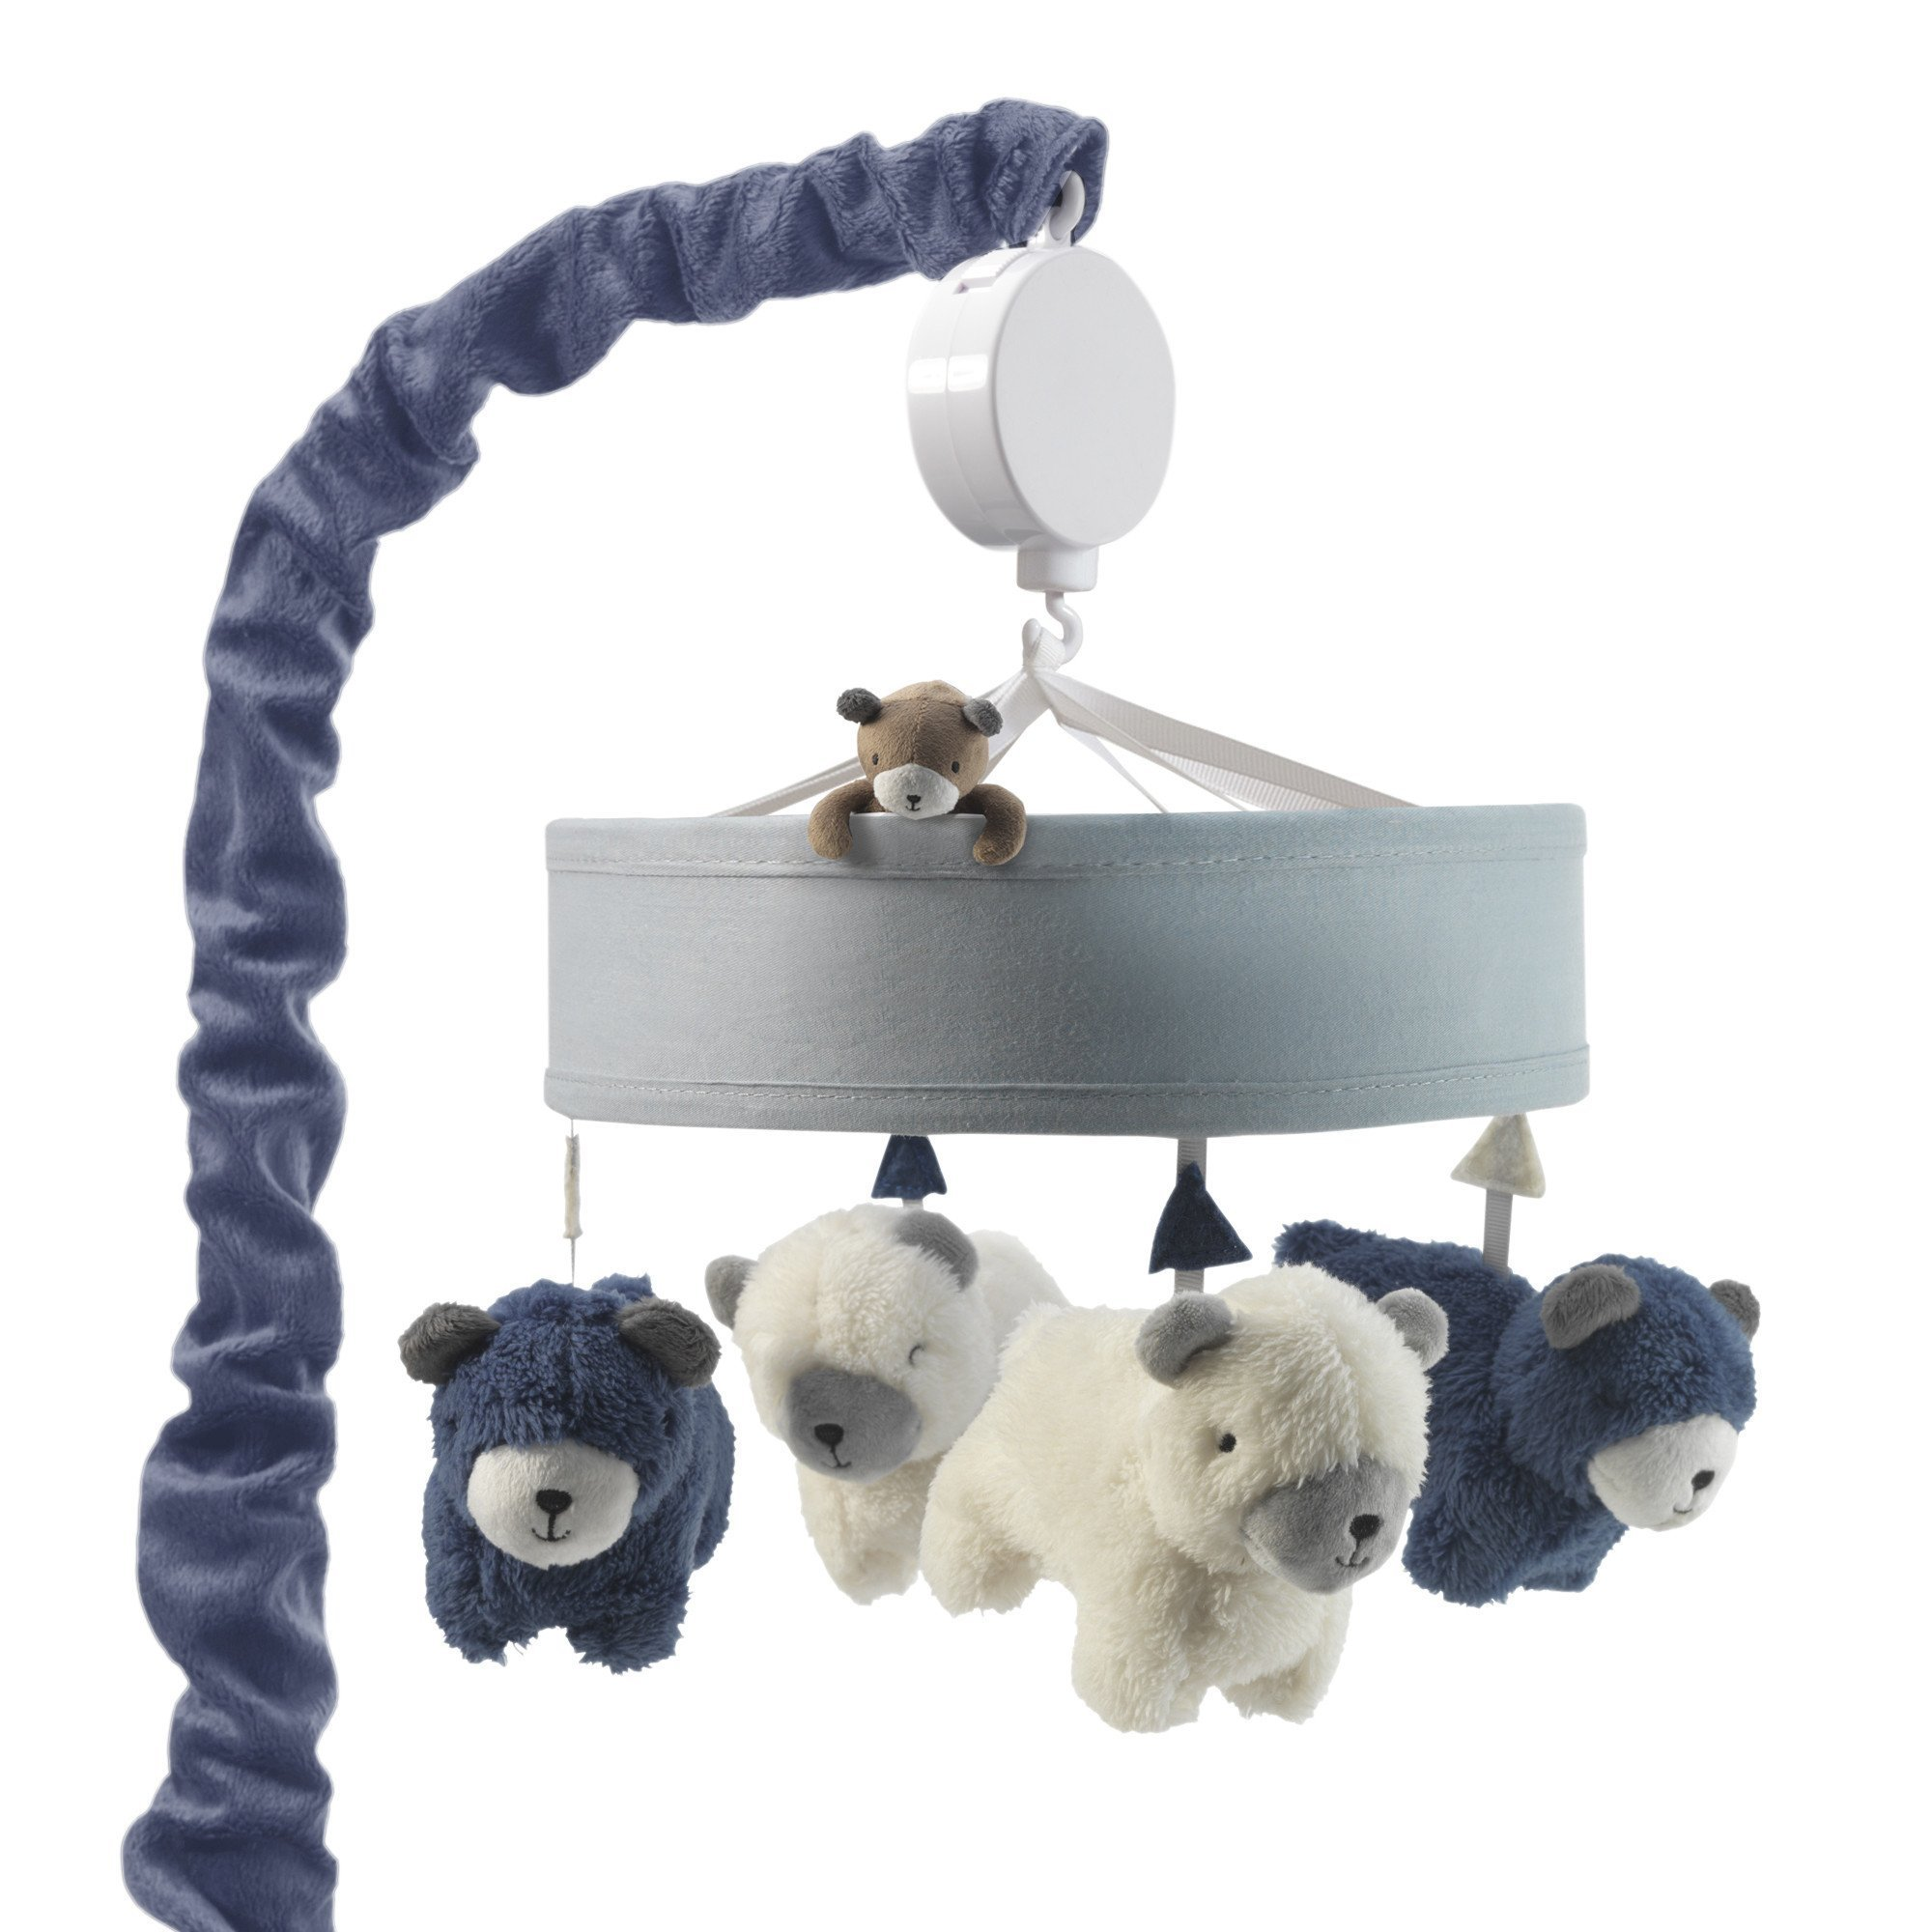 Lambs & Ivy Signature Montana Musical Mobile - Blue/White Bears by Lambs & Ivy